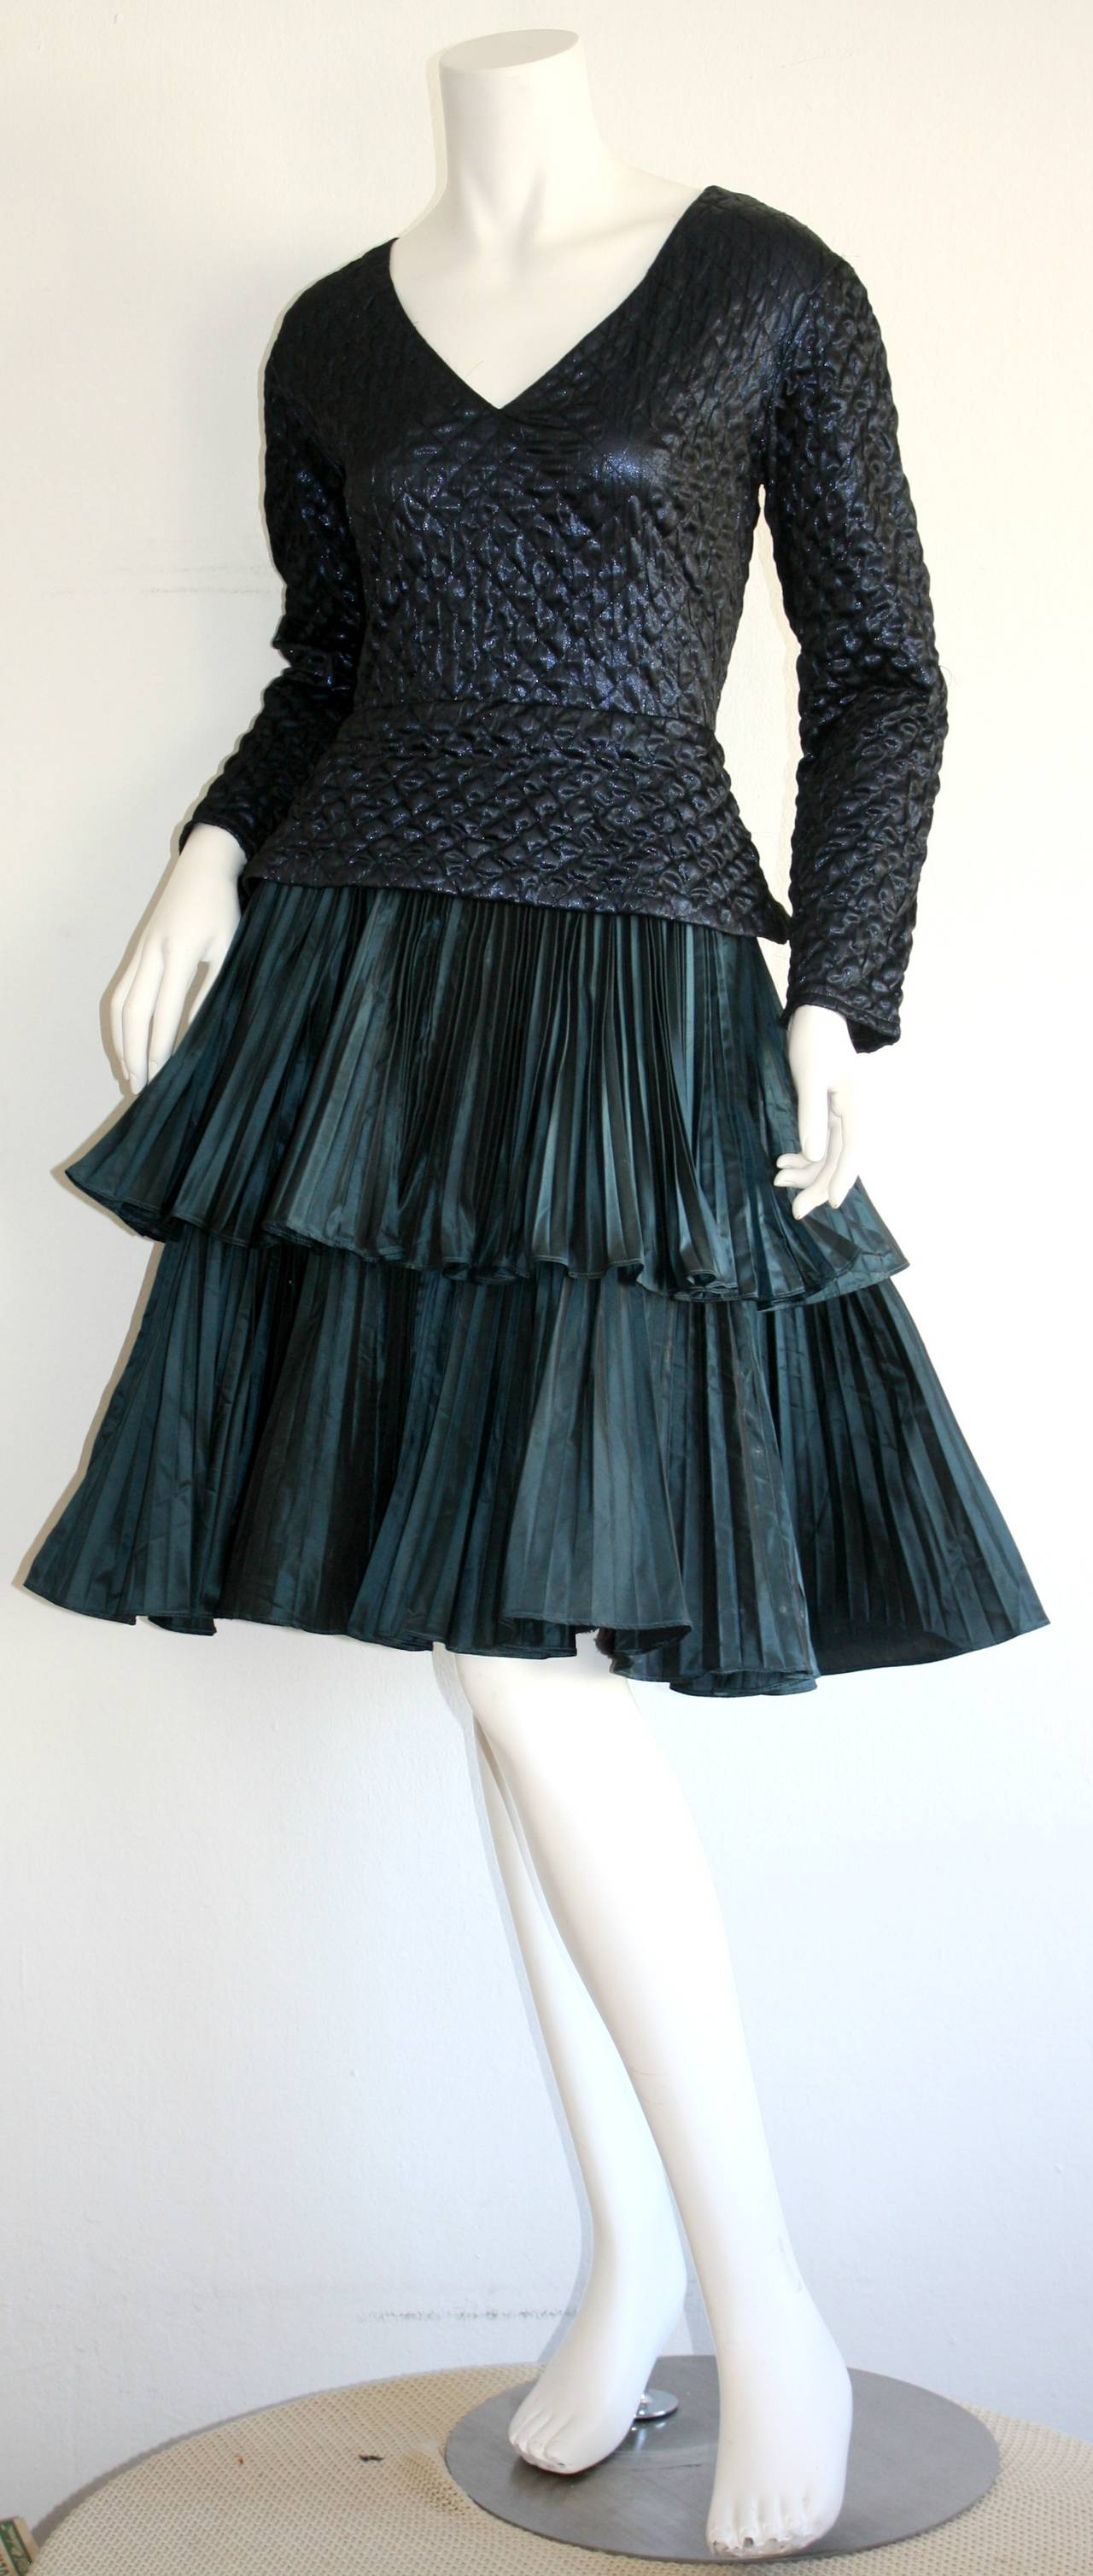 Gorgeous vintage navy blue metallic Bernard Perris dress. Wonderful diamond quilting on bodice, with a dramatic, full accordion pleated tiered skirt. Chic silk covered buttons up the back. 100% silk. Made in France. In great condition. Approximately